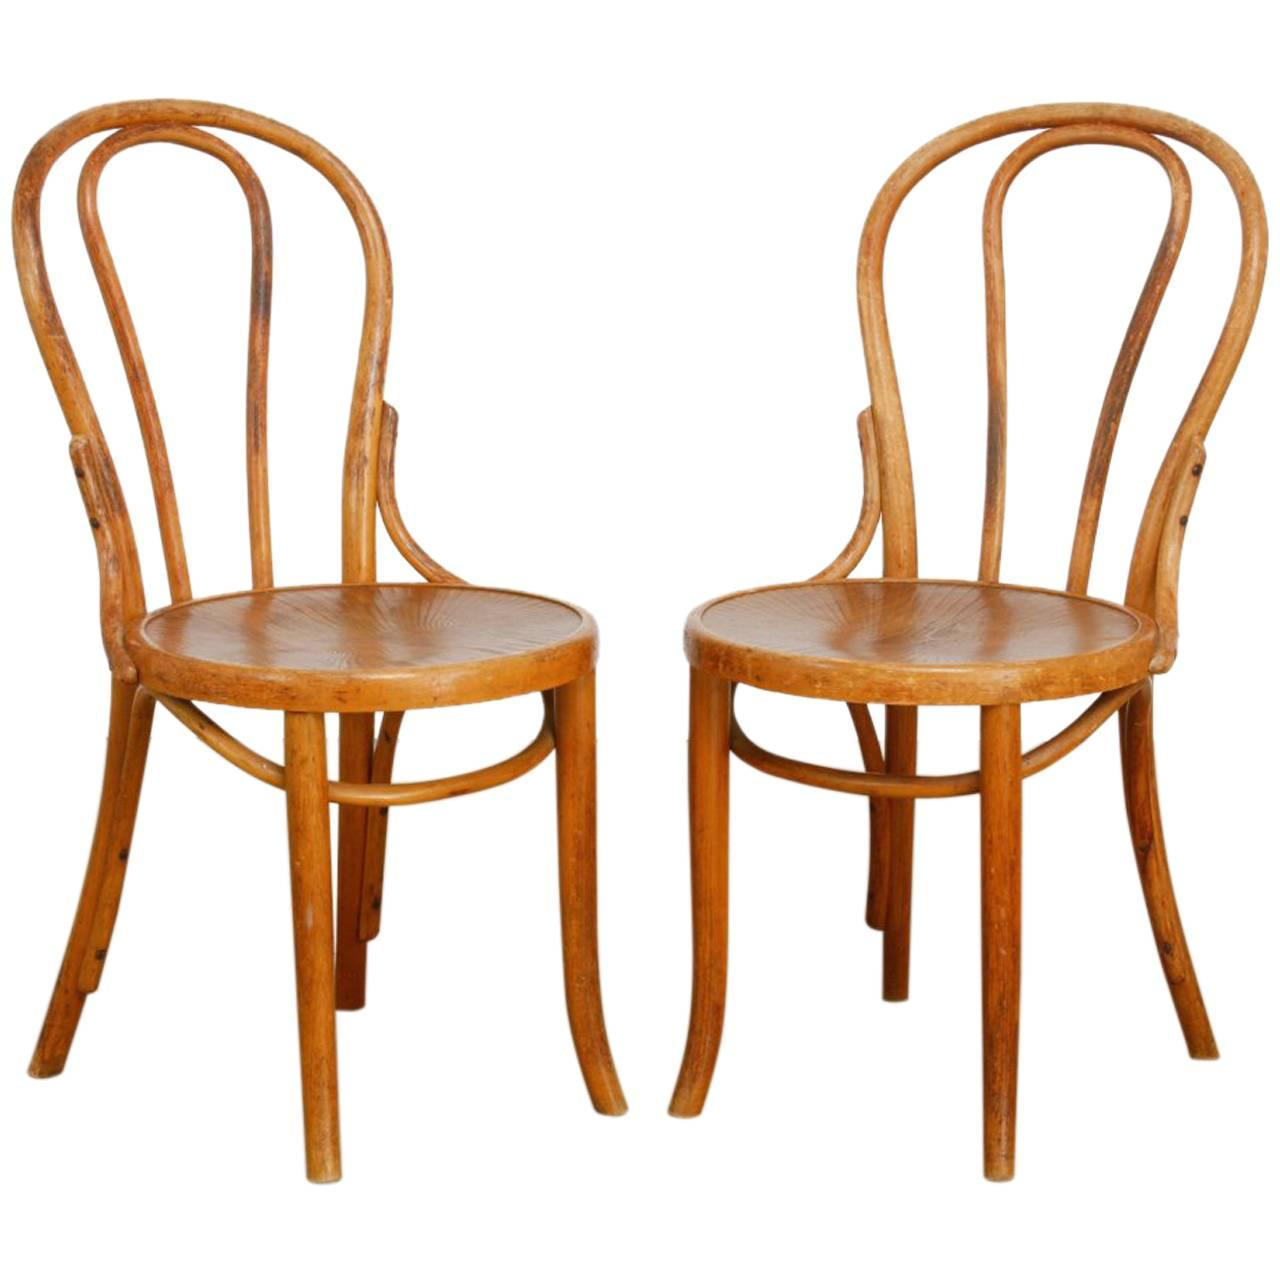 Pair Of Michael Thonet No. 18 Bentwood Viennese Cafe Chairs